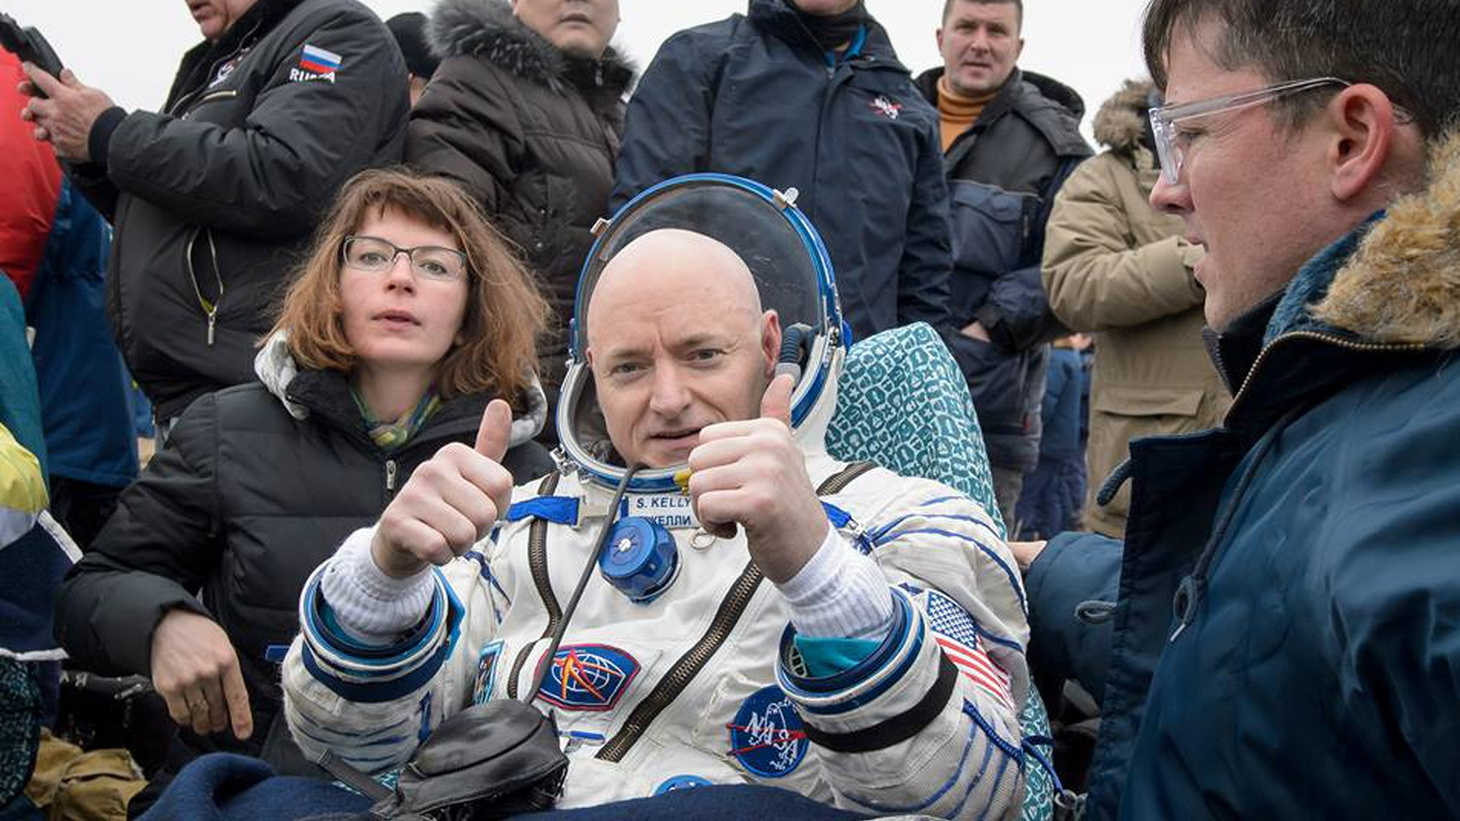 The longest American space voyage ever is now over and scientists are about to swarm over Scott Kelly. When the astronaut touched down yesterday in Kazakhstan, he set a record for the longest spaceflight by an American.